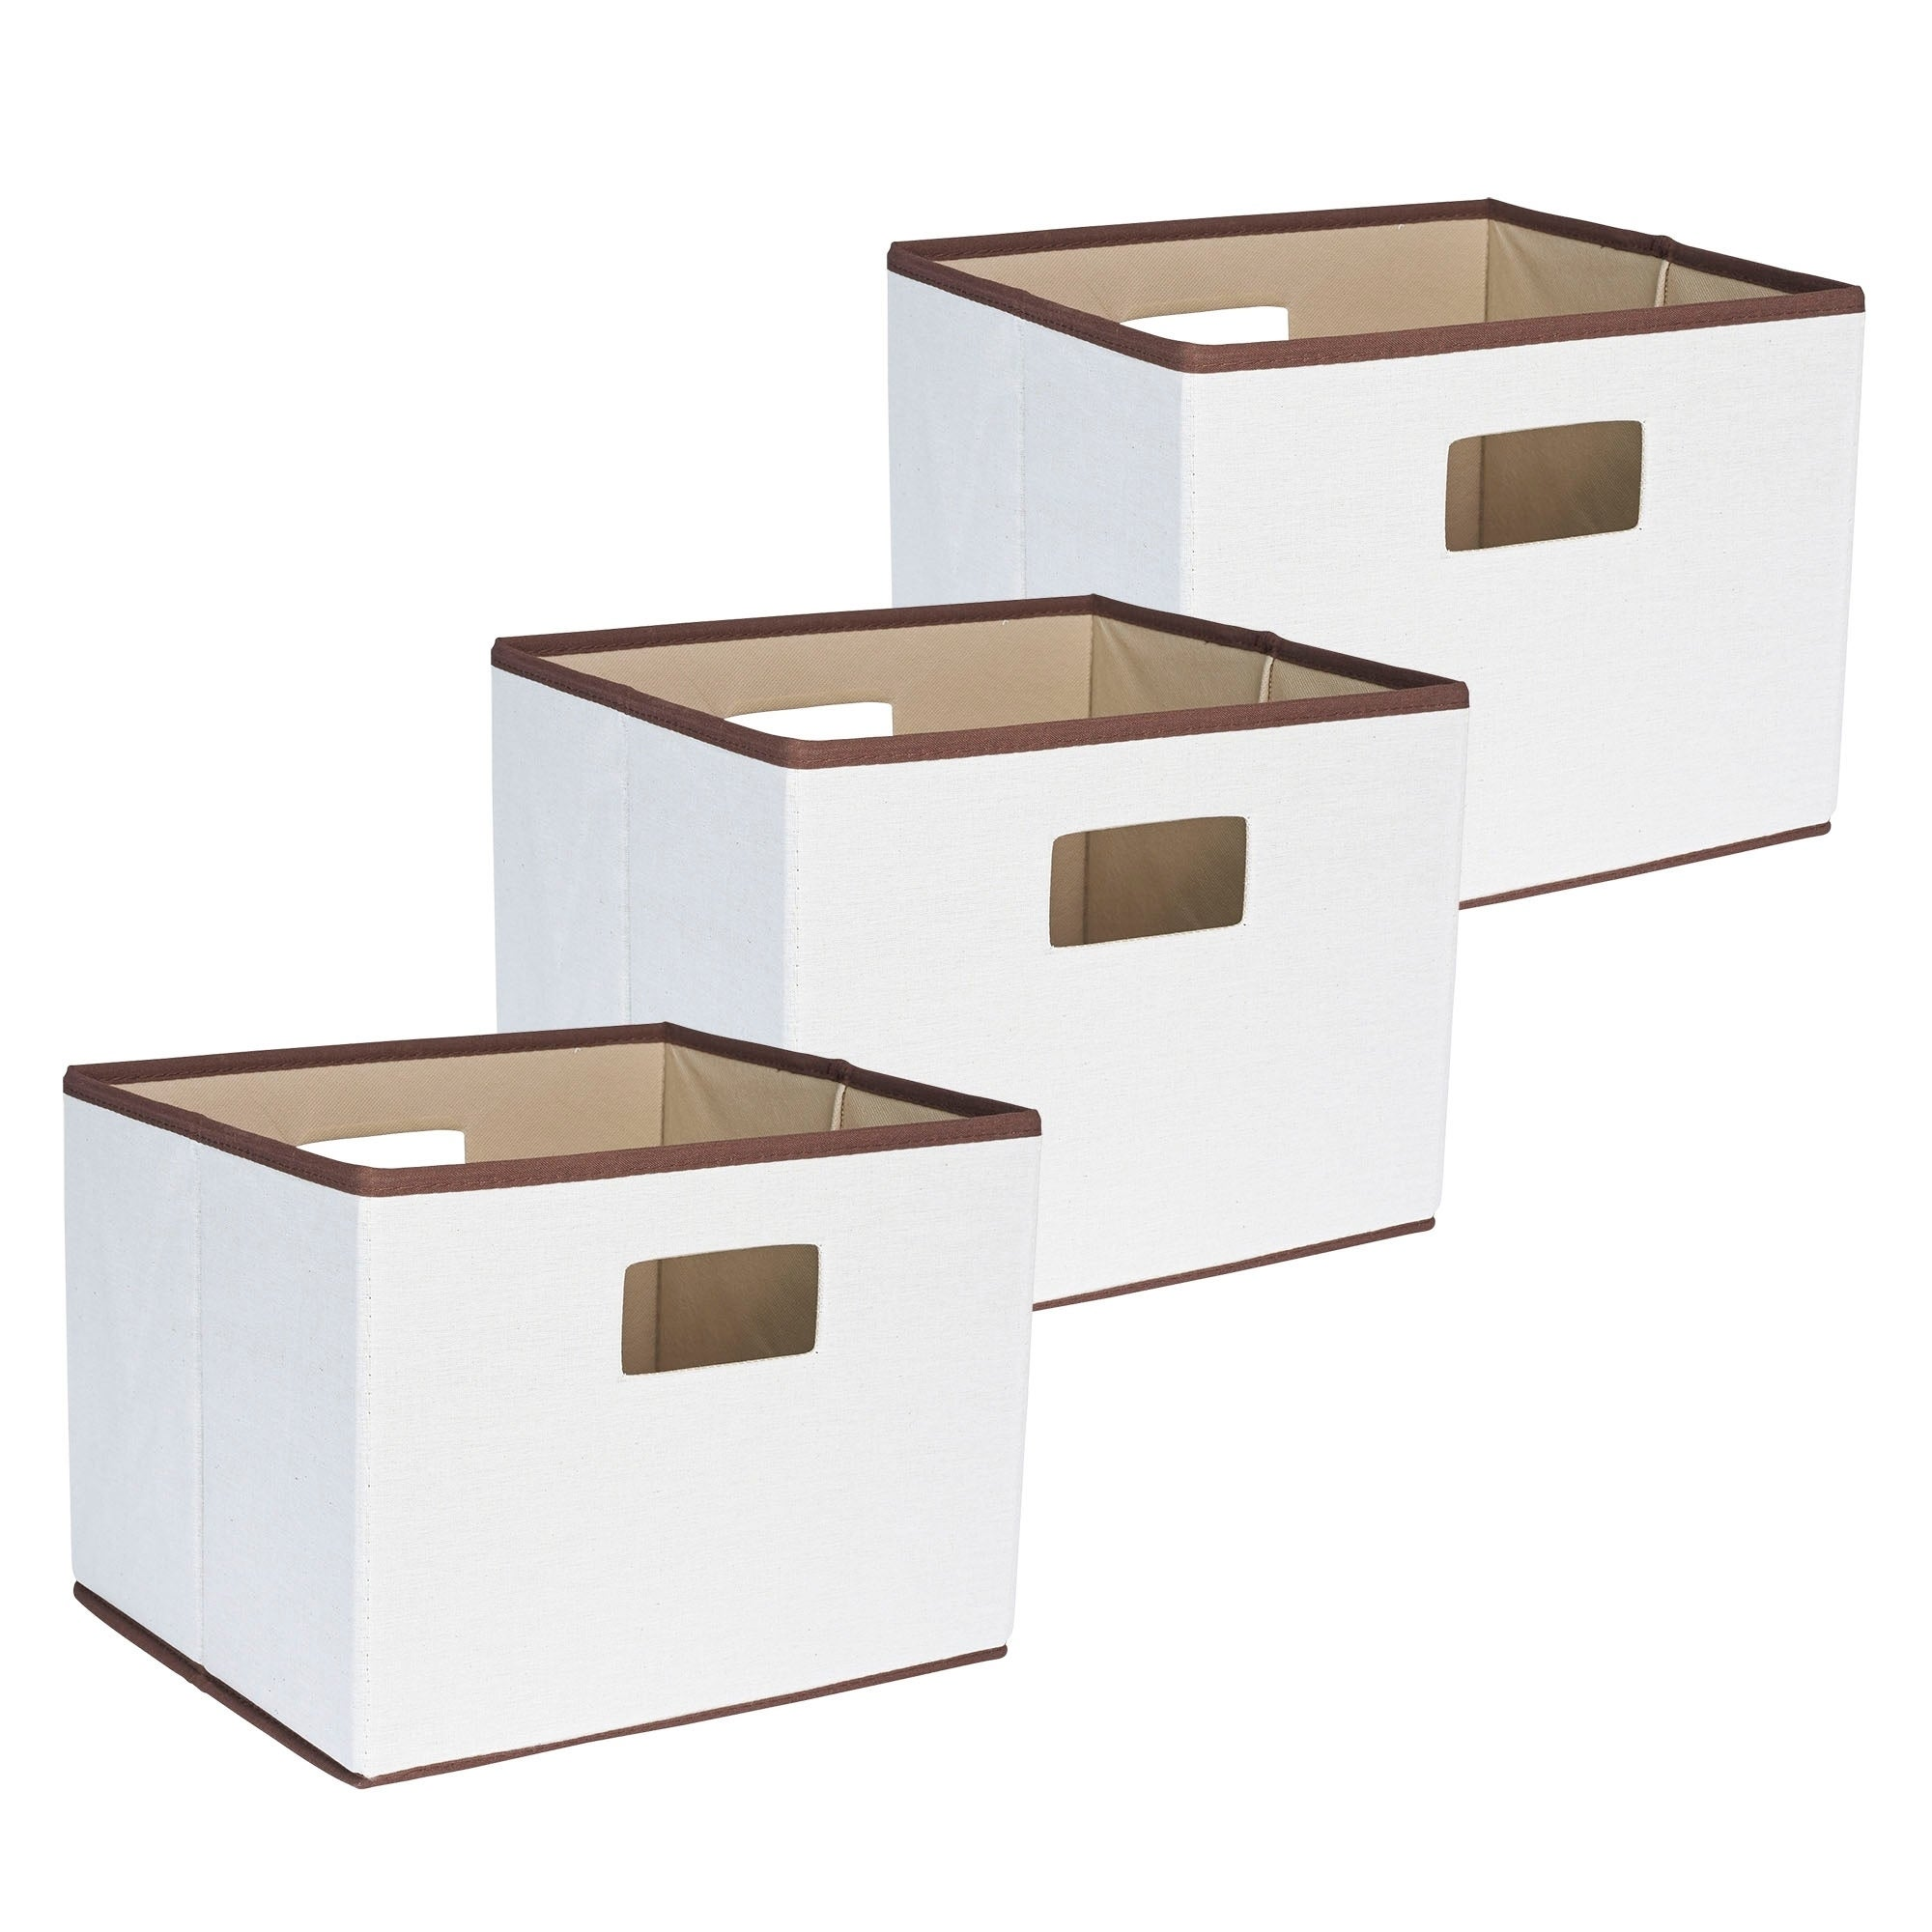 Household Essentials All Natural with Brown Trim Canvas Storage Cube, Set of 3